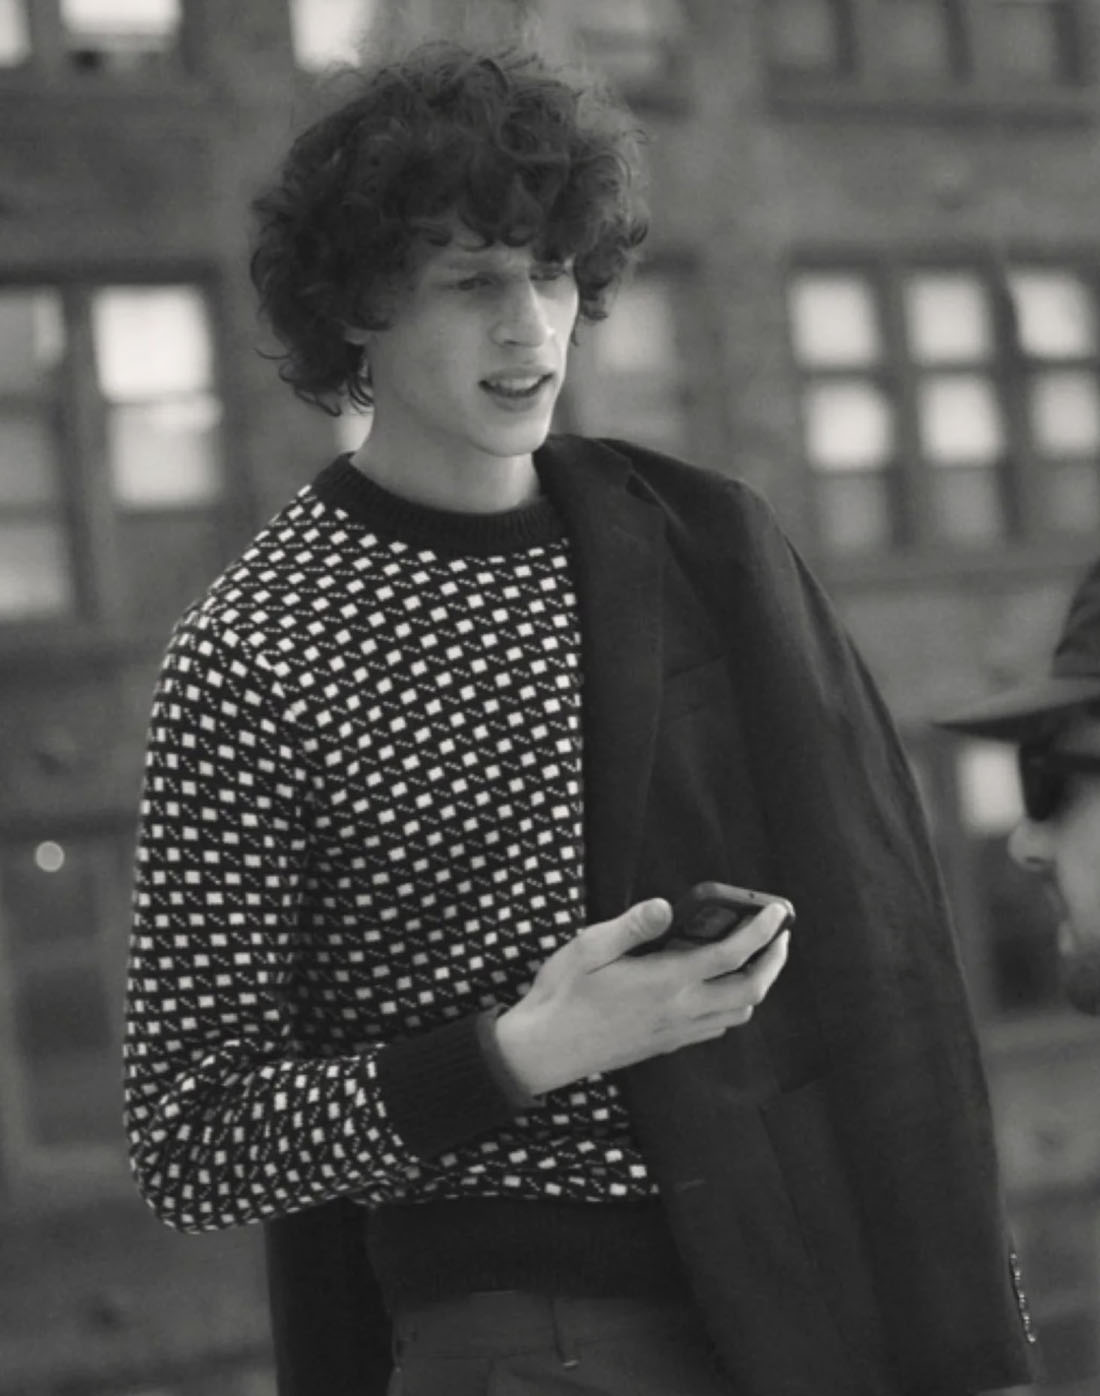 black and white image of a man wearing a dot printed sweater